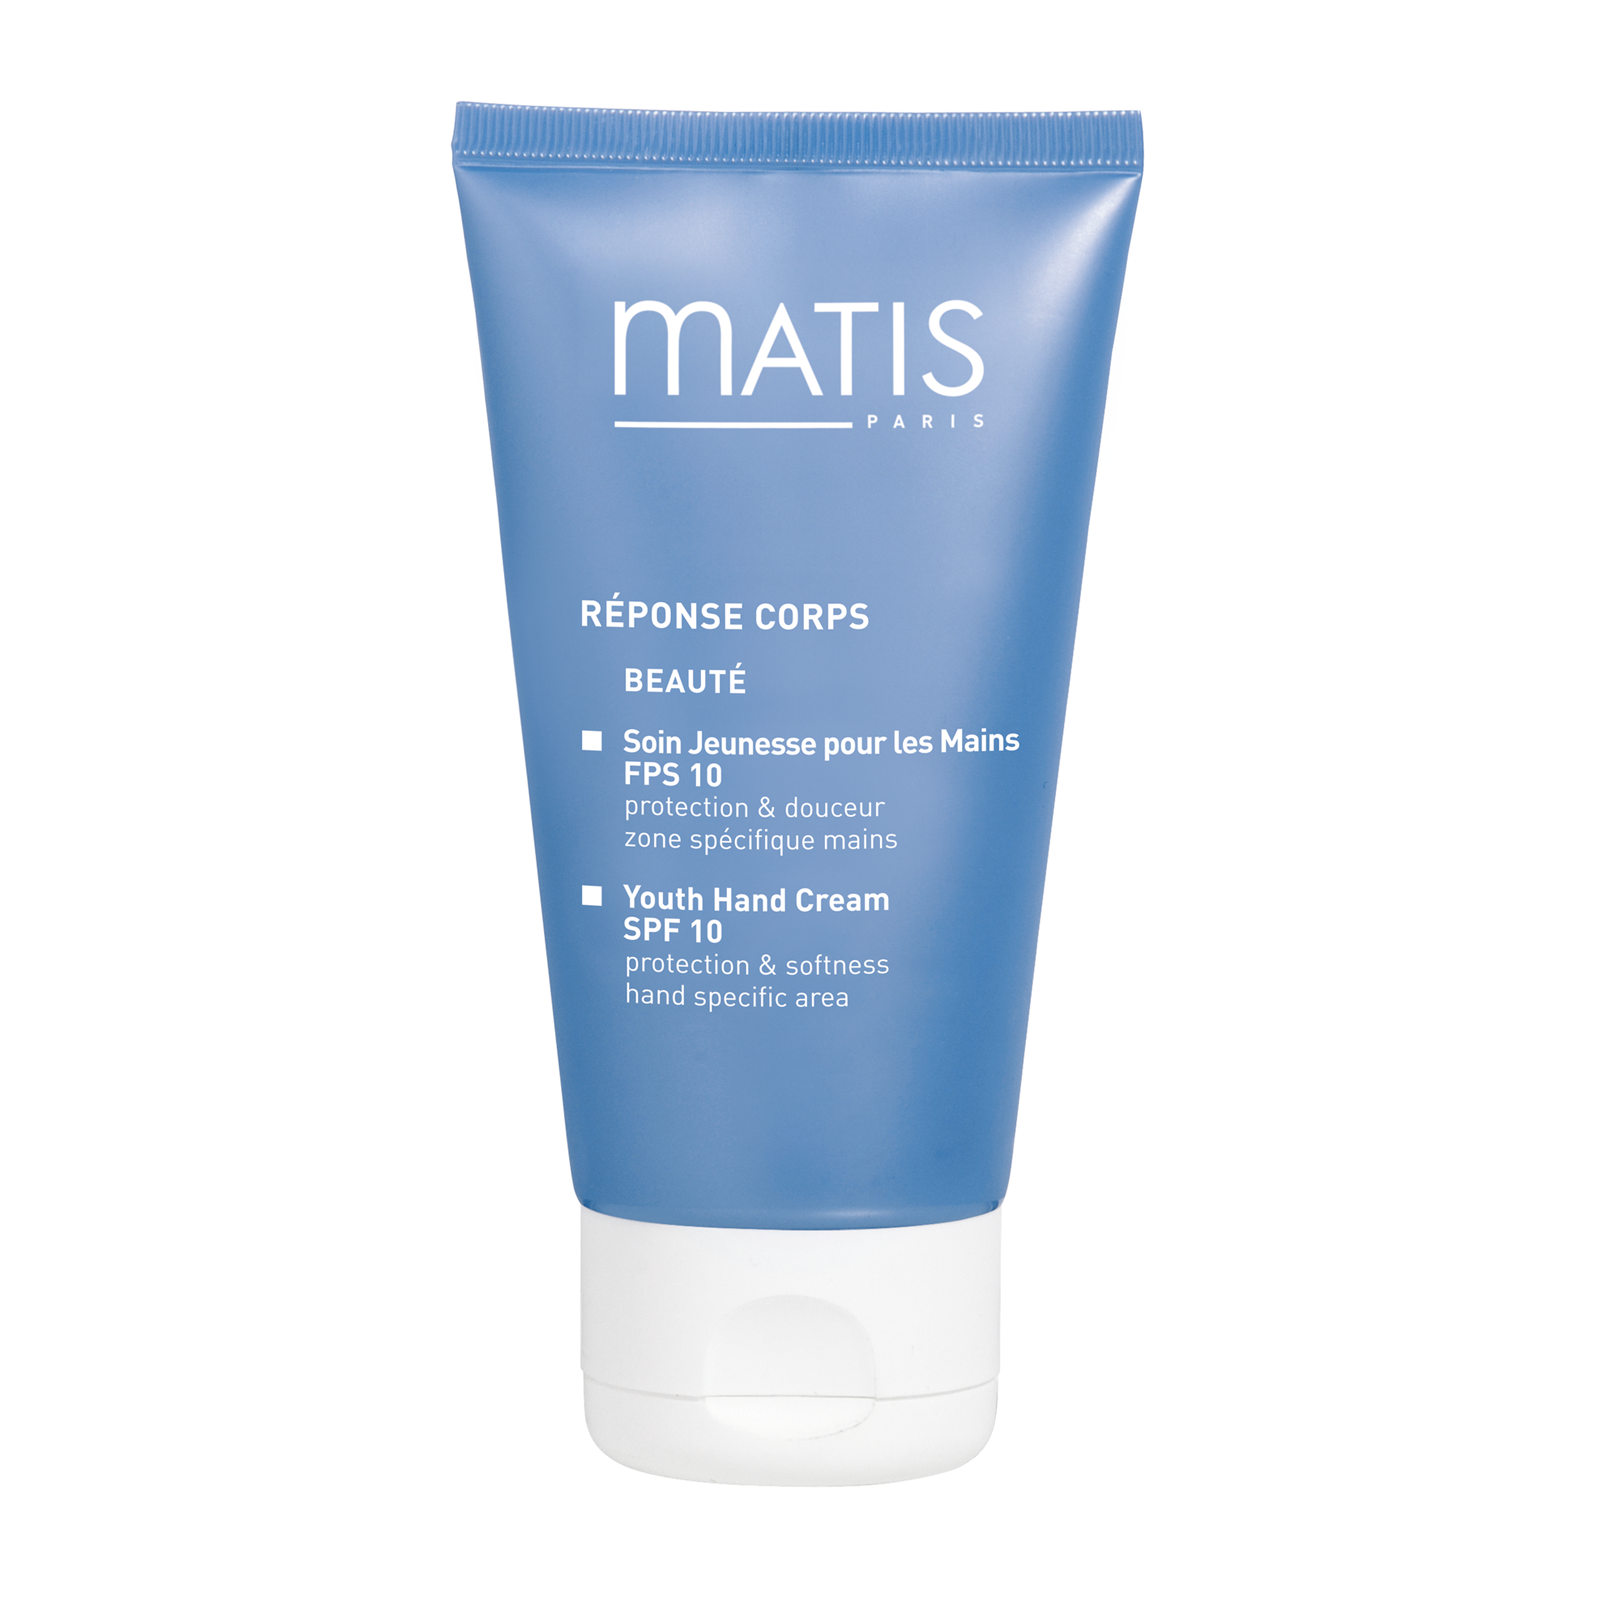 Matis Reponse Corps Youth Hand Cream SPF10 (50ml)